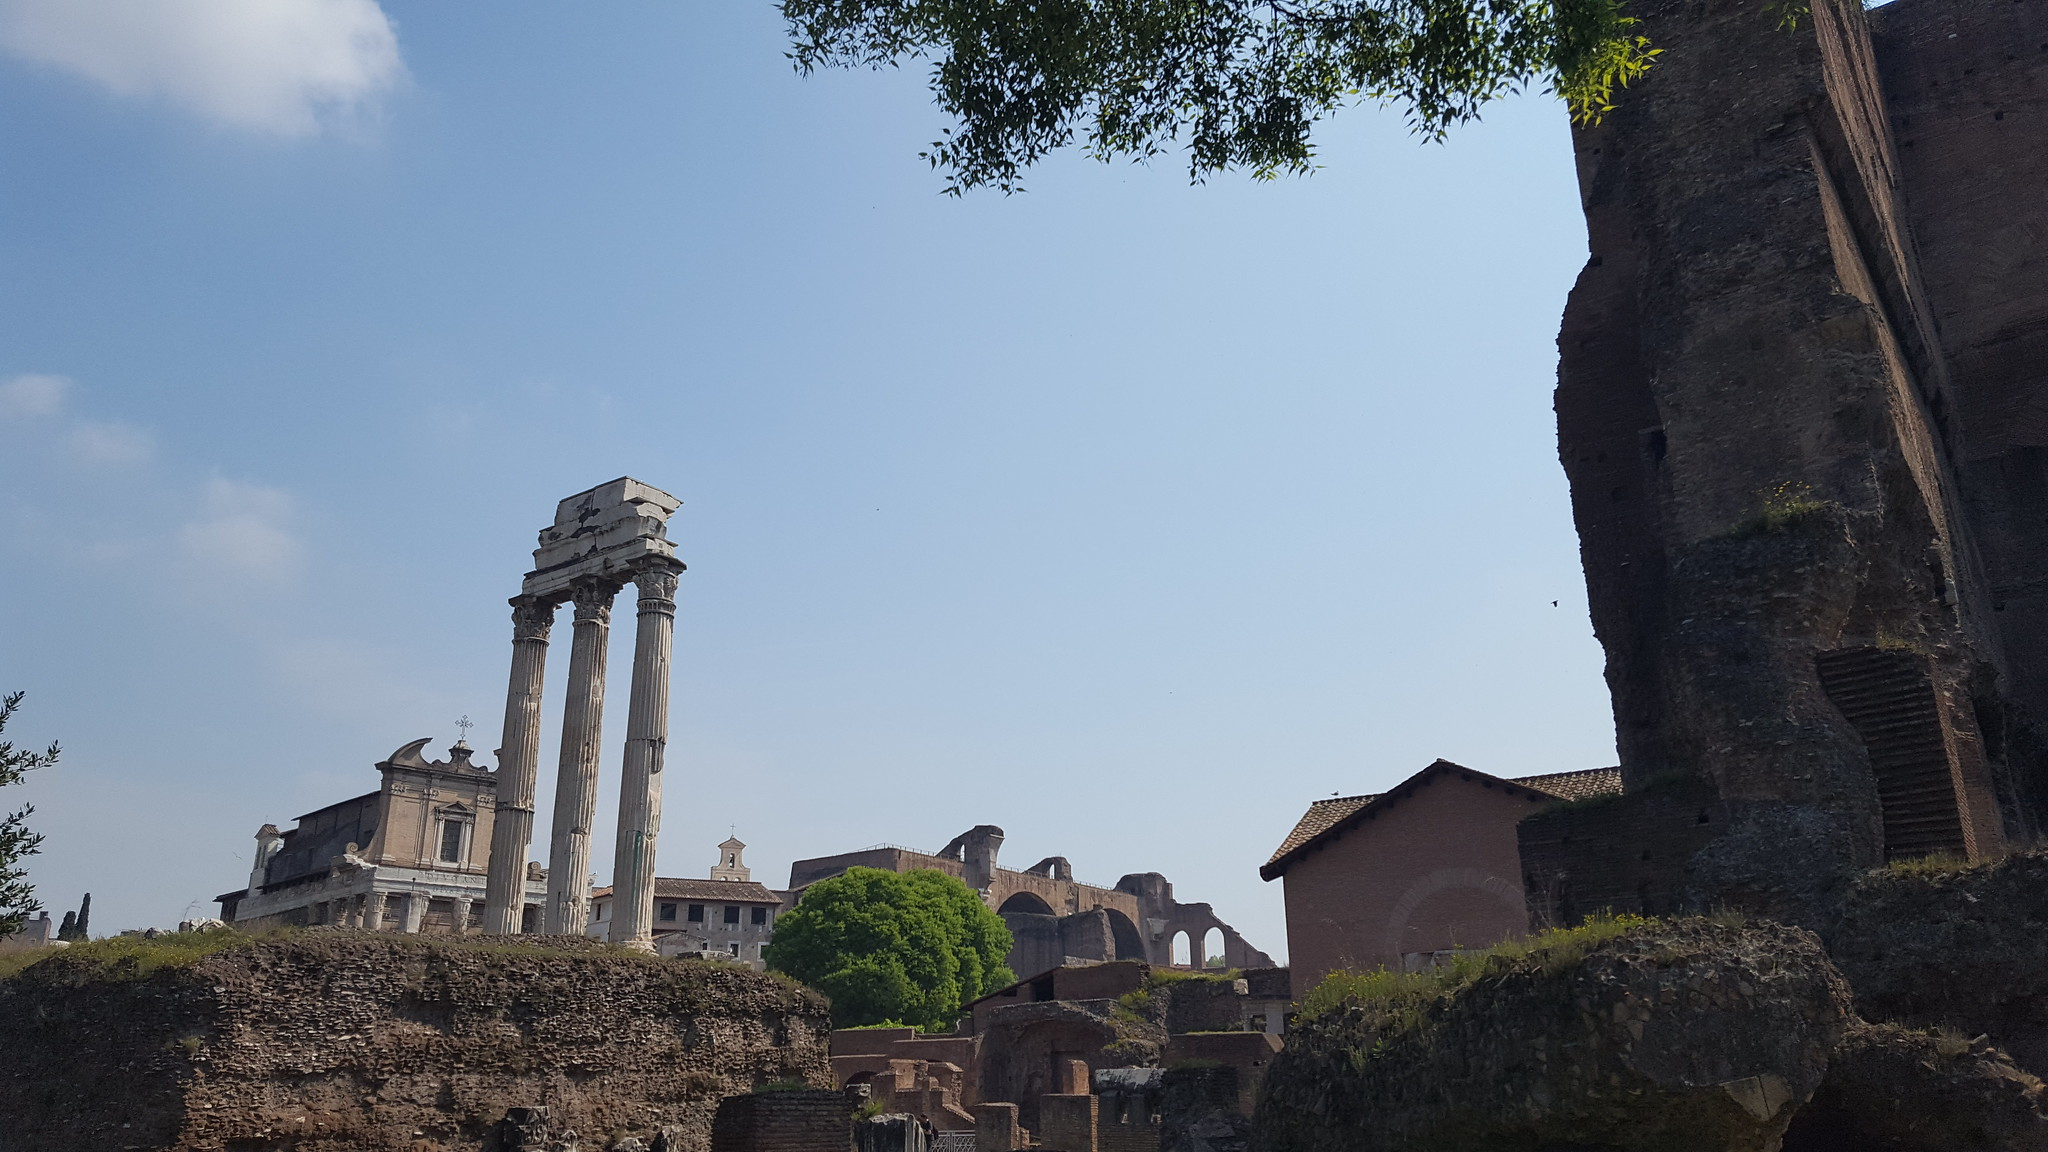 Temple of Castor and Pollux (Castor, Aedes, Templum)